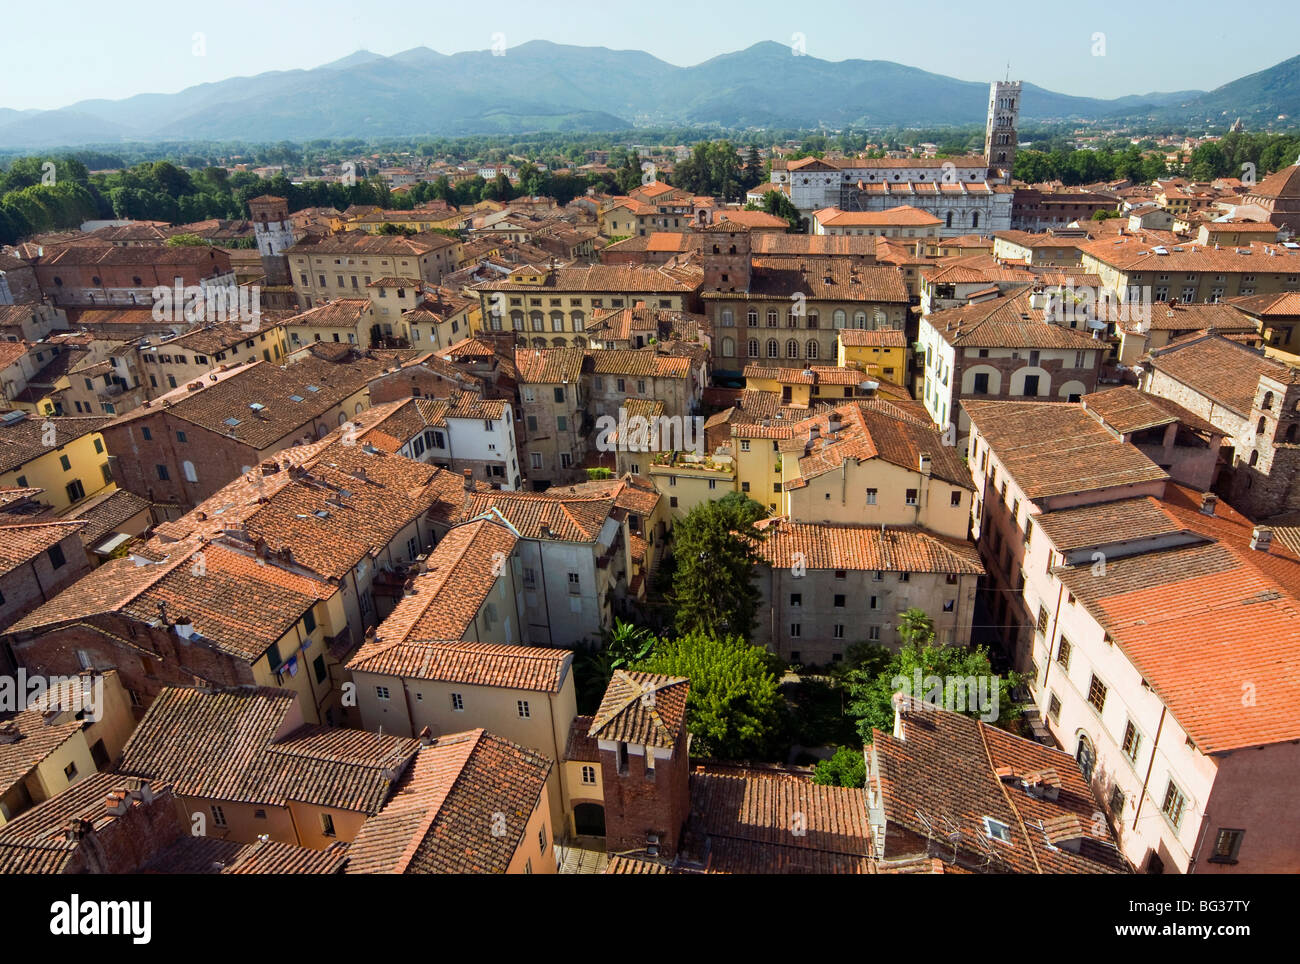 View of Lucca from Torre Guinigi, Lucca, Tuscany, Italy, Europe - Stock Image